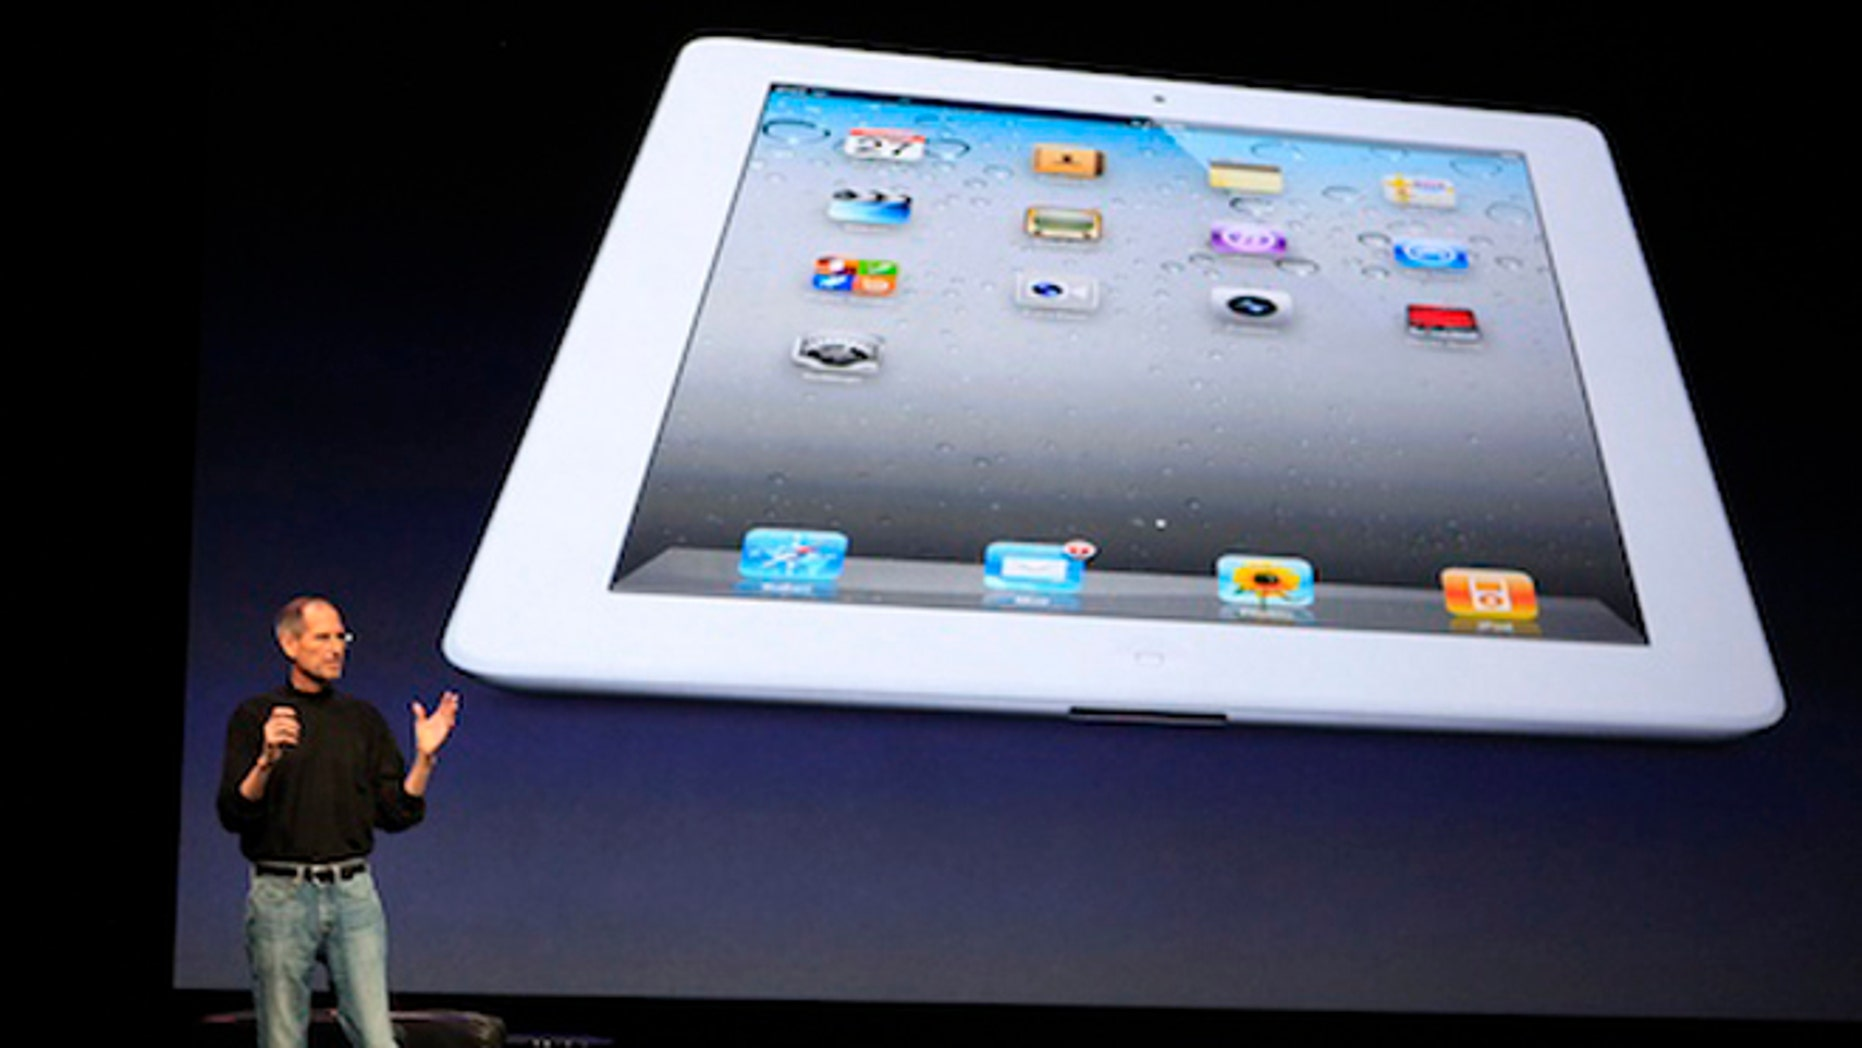 March 2, 2011: Apple Inc. CEO Steve Jobs introduces the iPad 2 on stage during an event in San Francisco, California.